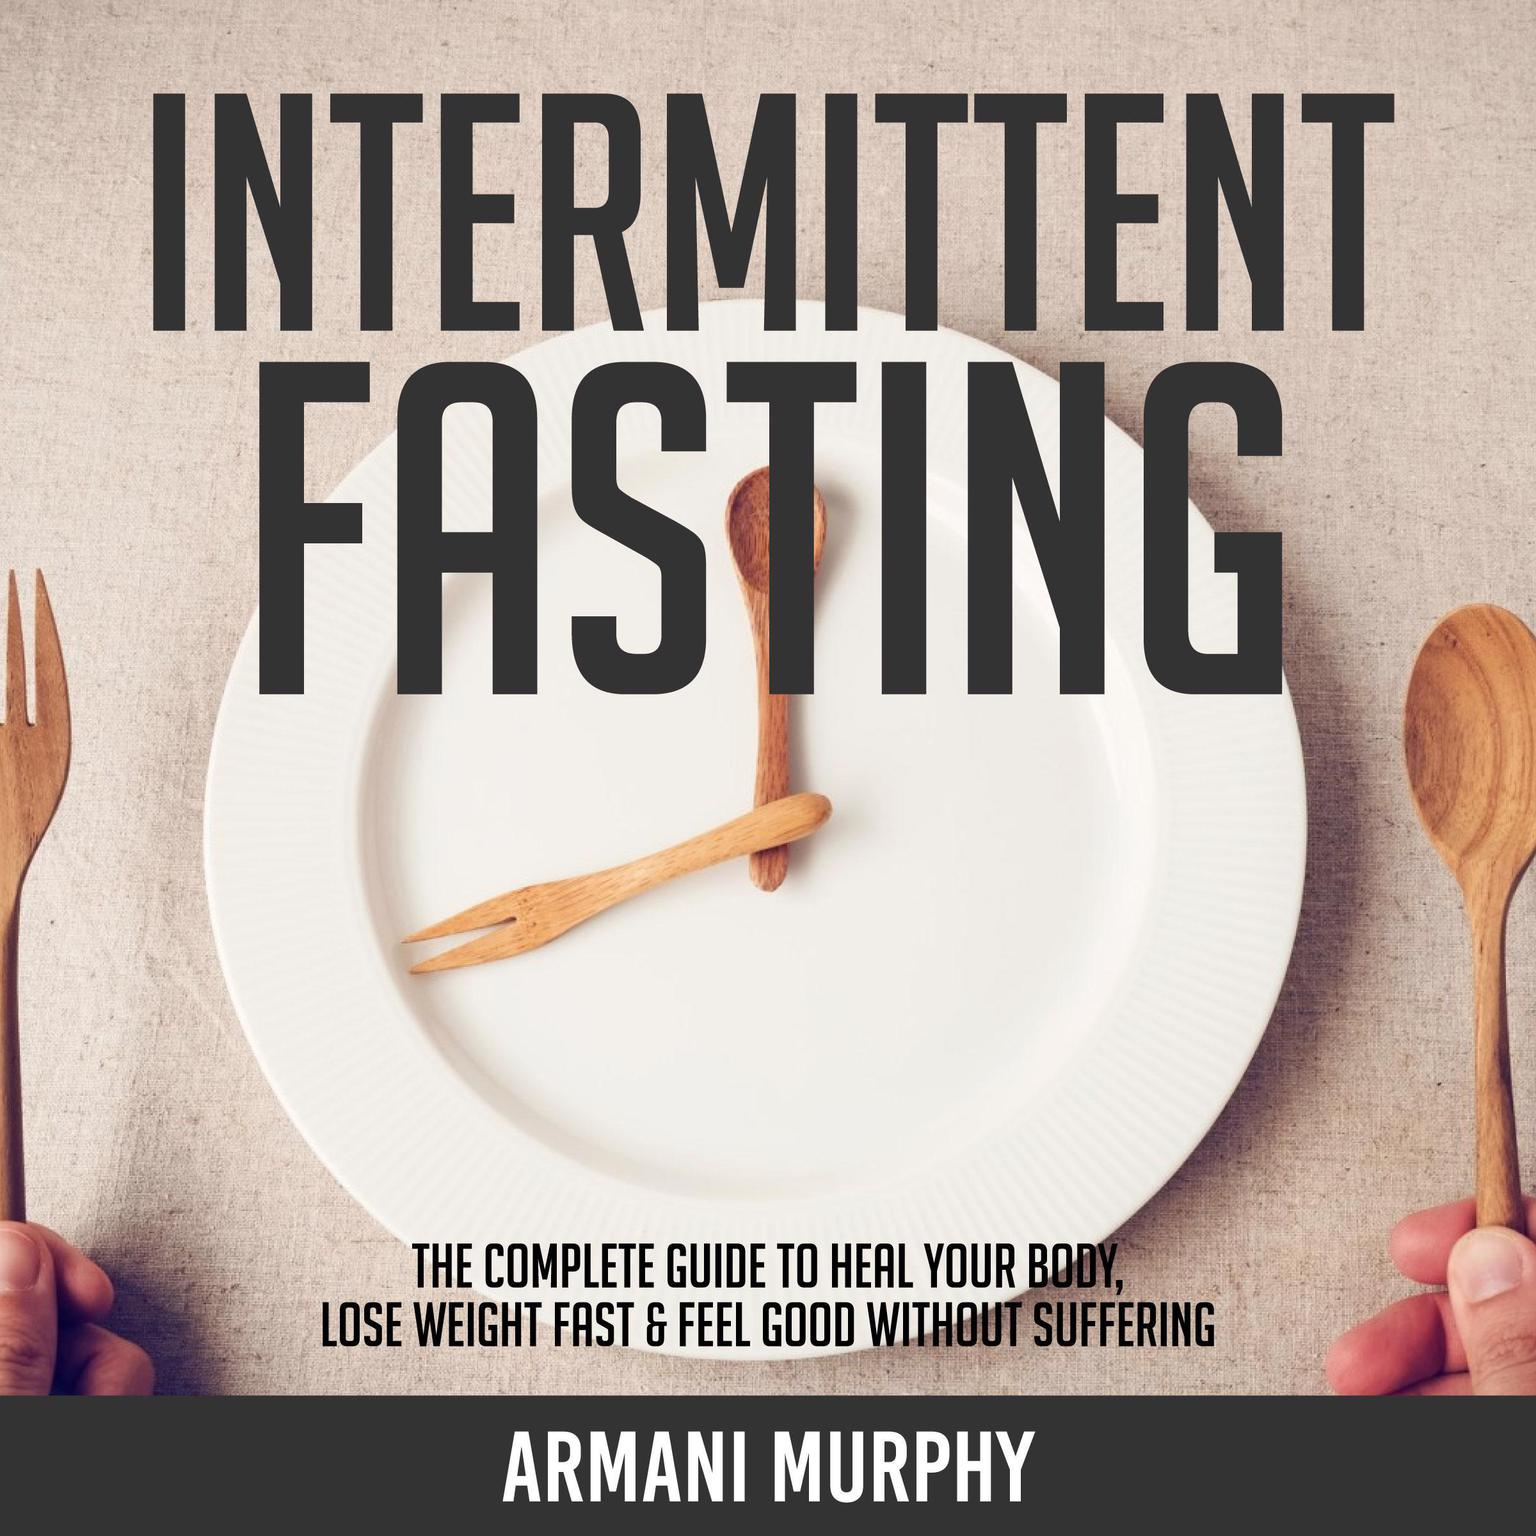 Intermittent Fasting: The Complete Guide to Heal Your Body, Lose Weight Fast & Feel Good Without Suffering Audiobook, by Armani Murphy